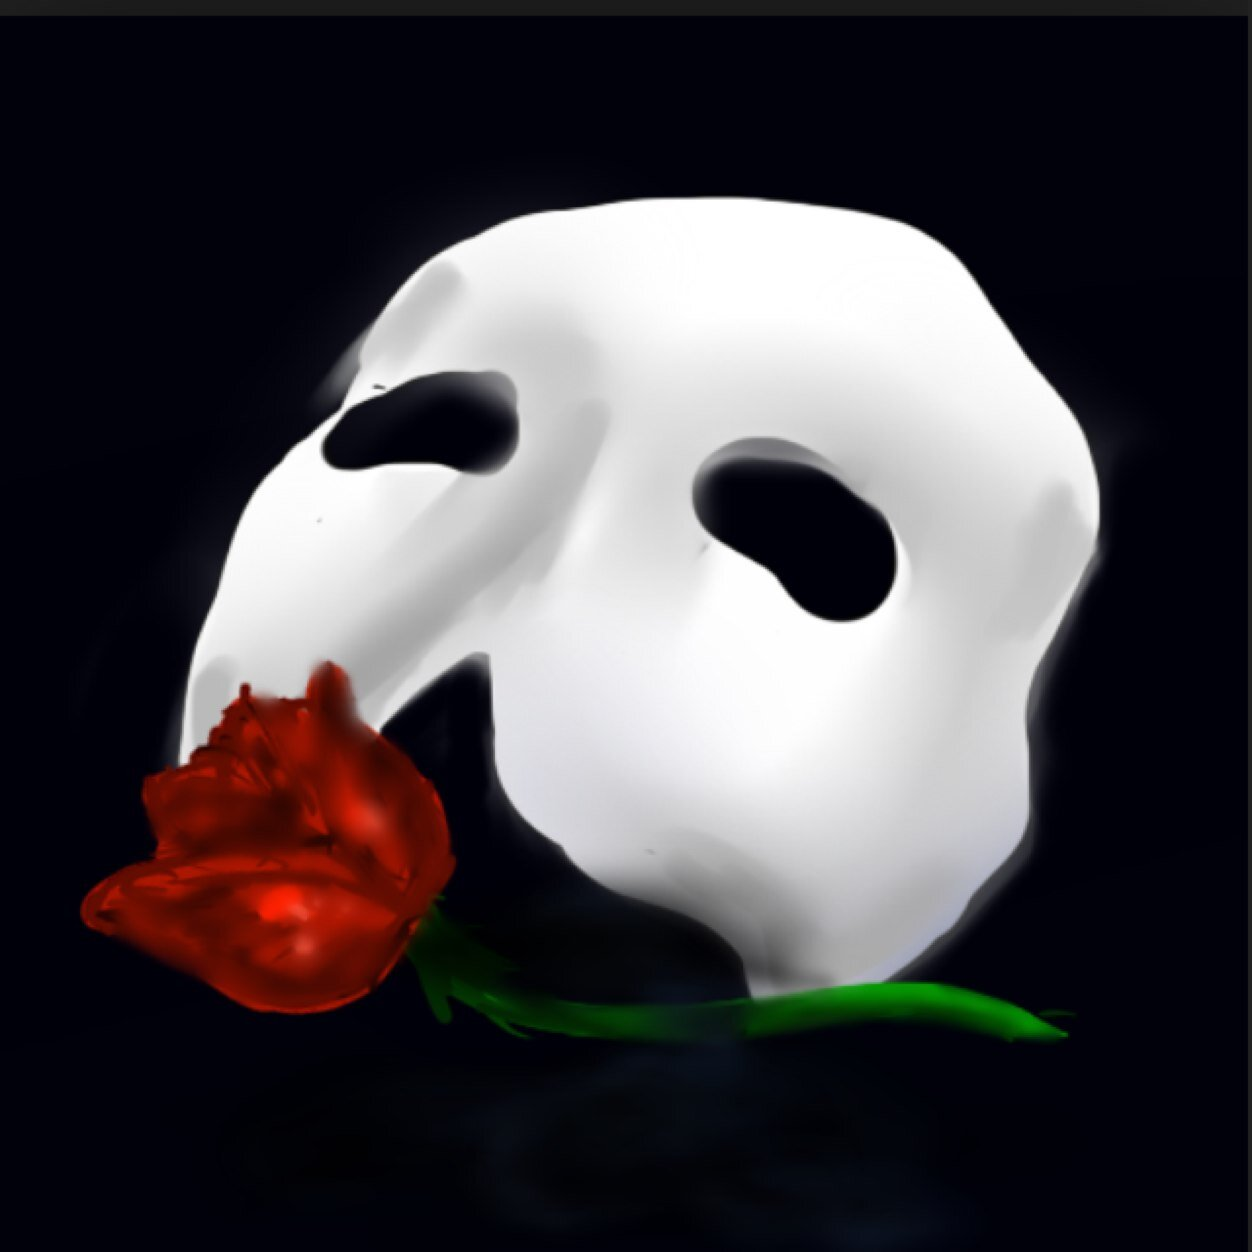 Phantom of the opera rose and mask the for The mask photos gallery